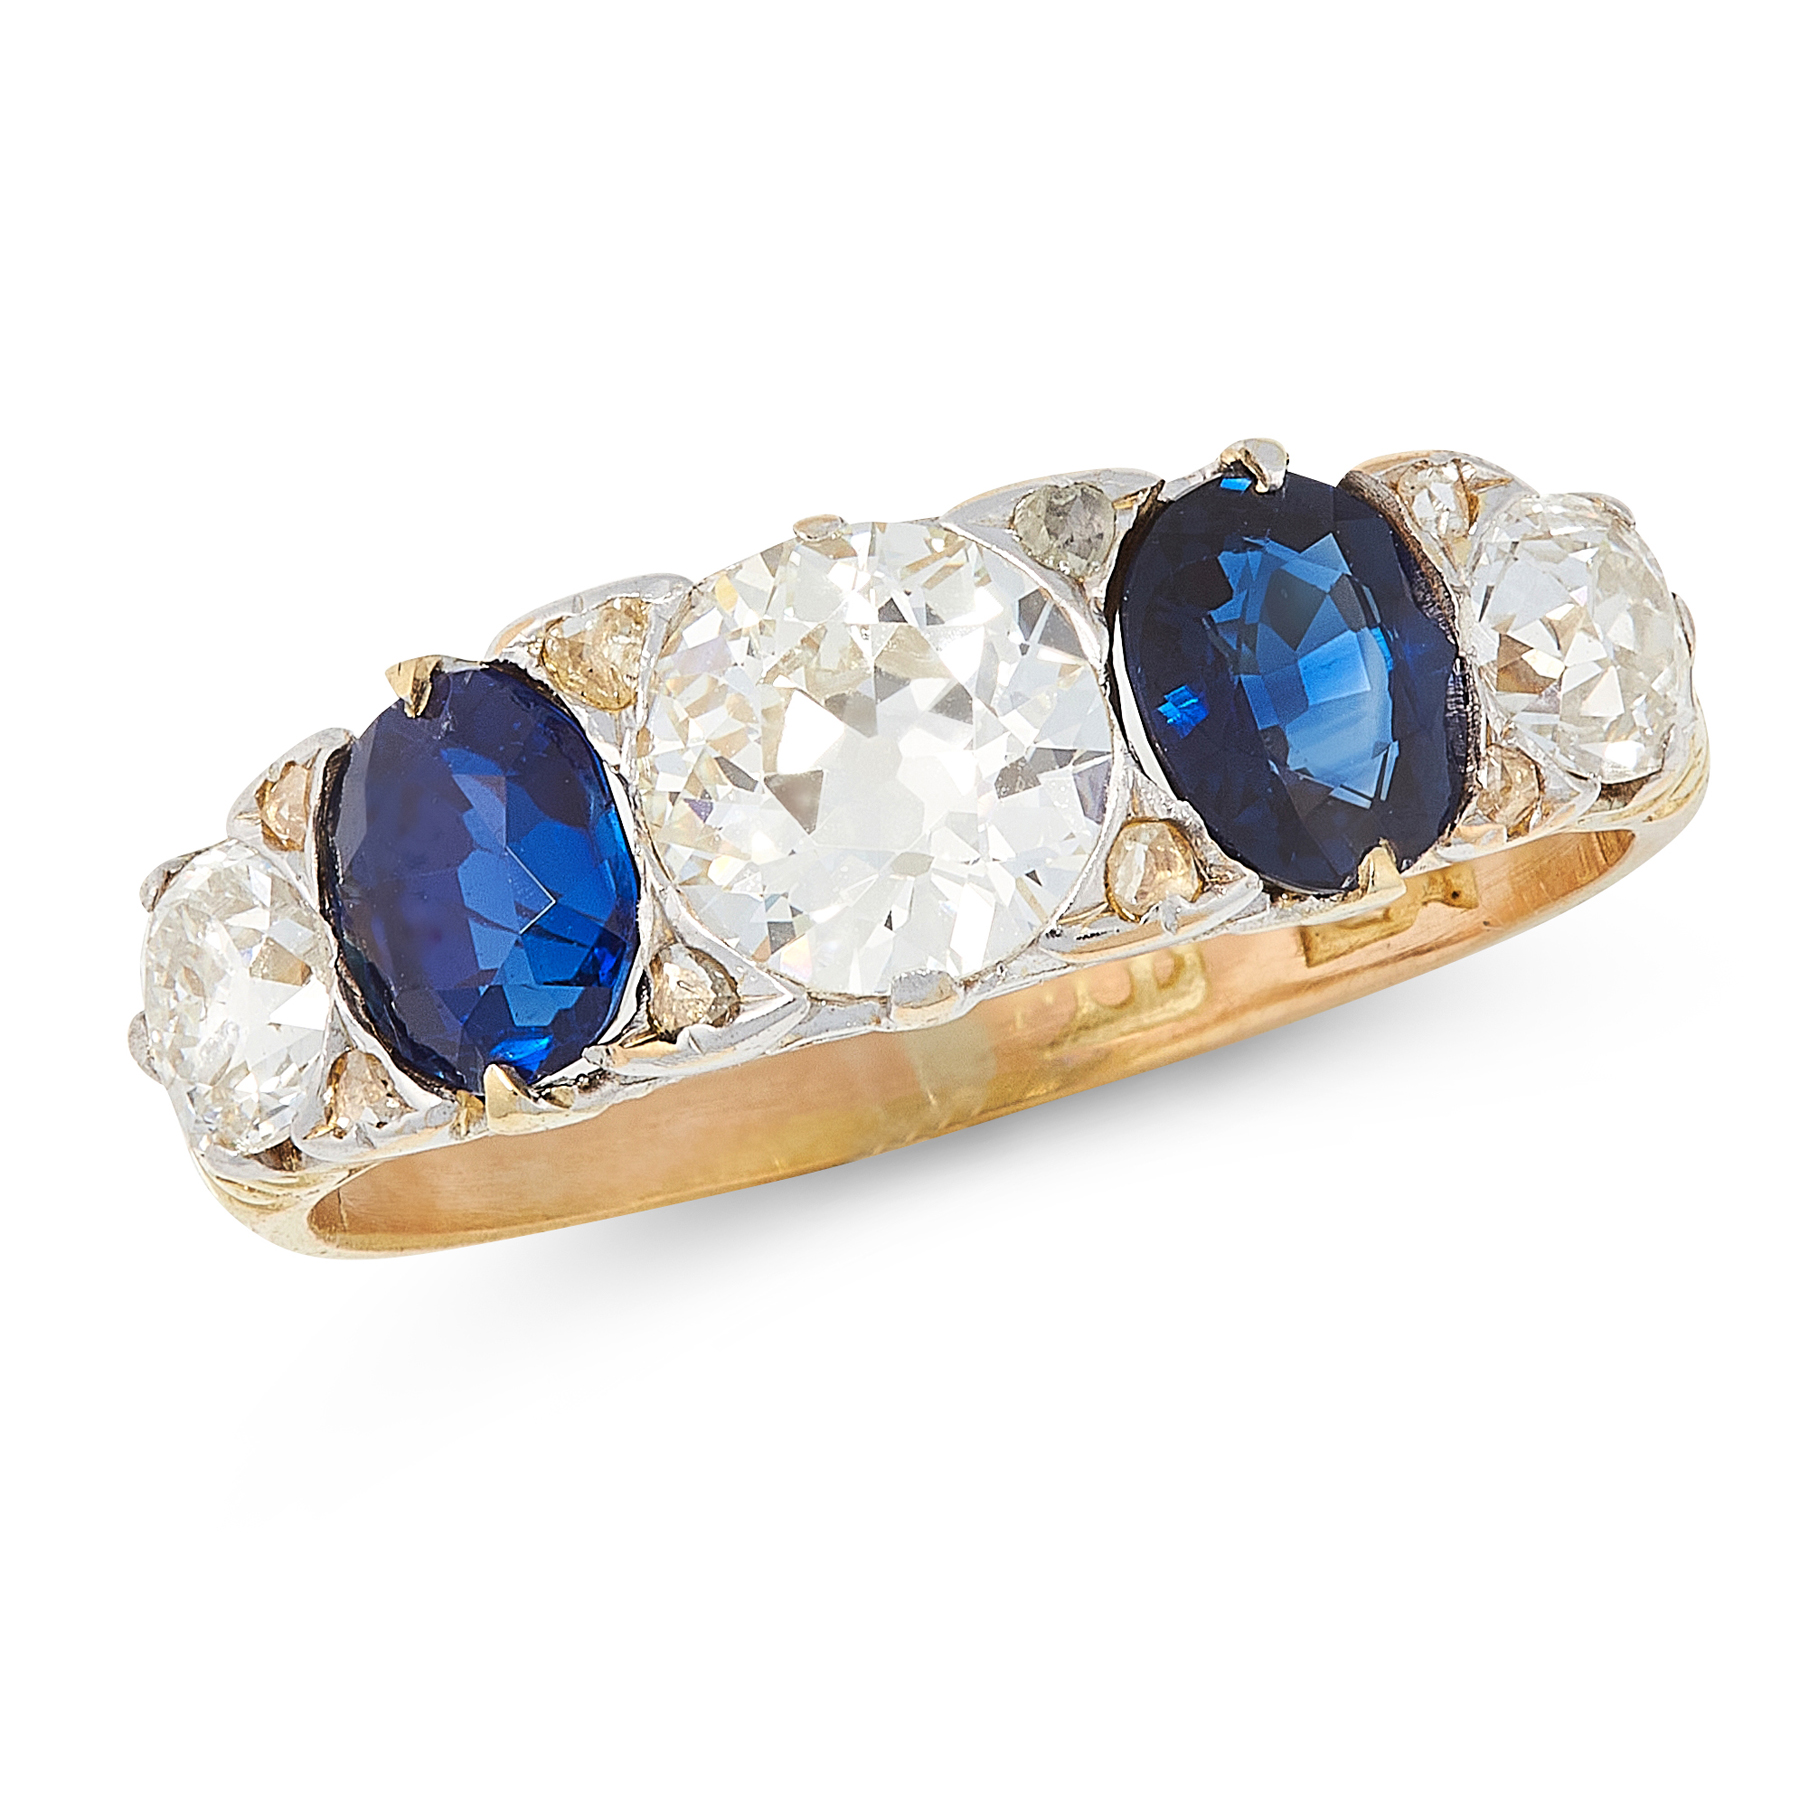 AN ANTIQUE SAPPHIRE AND DIAMOND RING in 18ct yellow gold, set with a trio of old cut diamonds of 0.